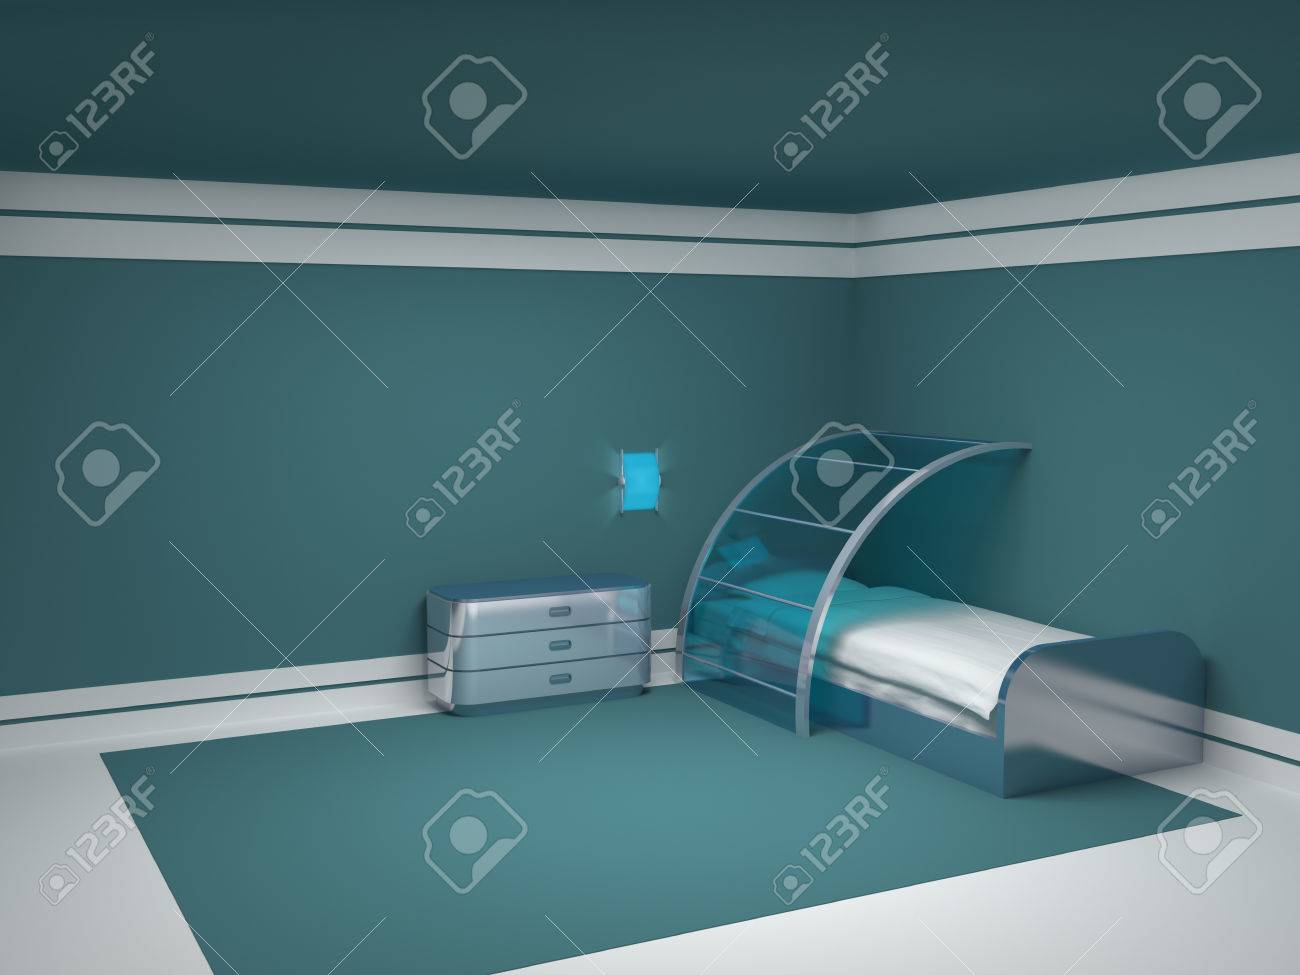 Futuristic bedroom furniture - Futuristic Bedroom With Metal Furniture Empty Room Stock Photo 24058265